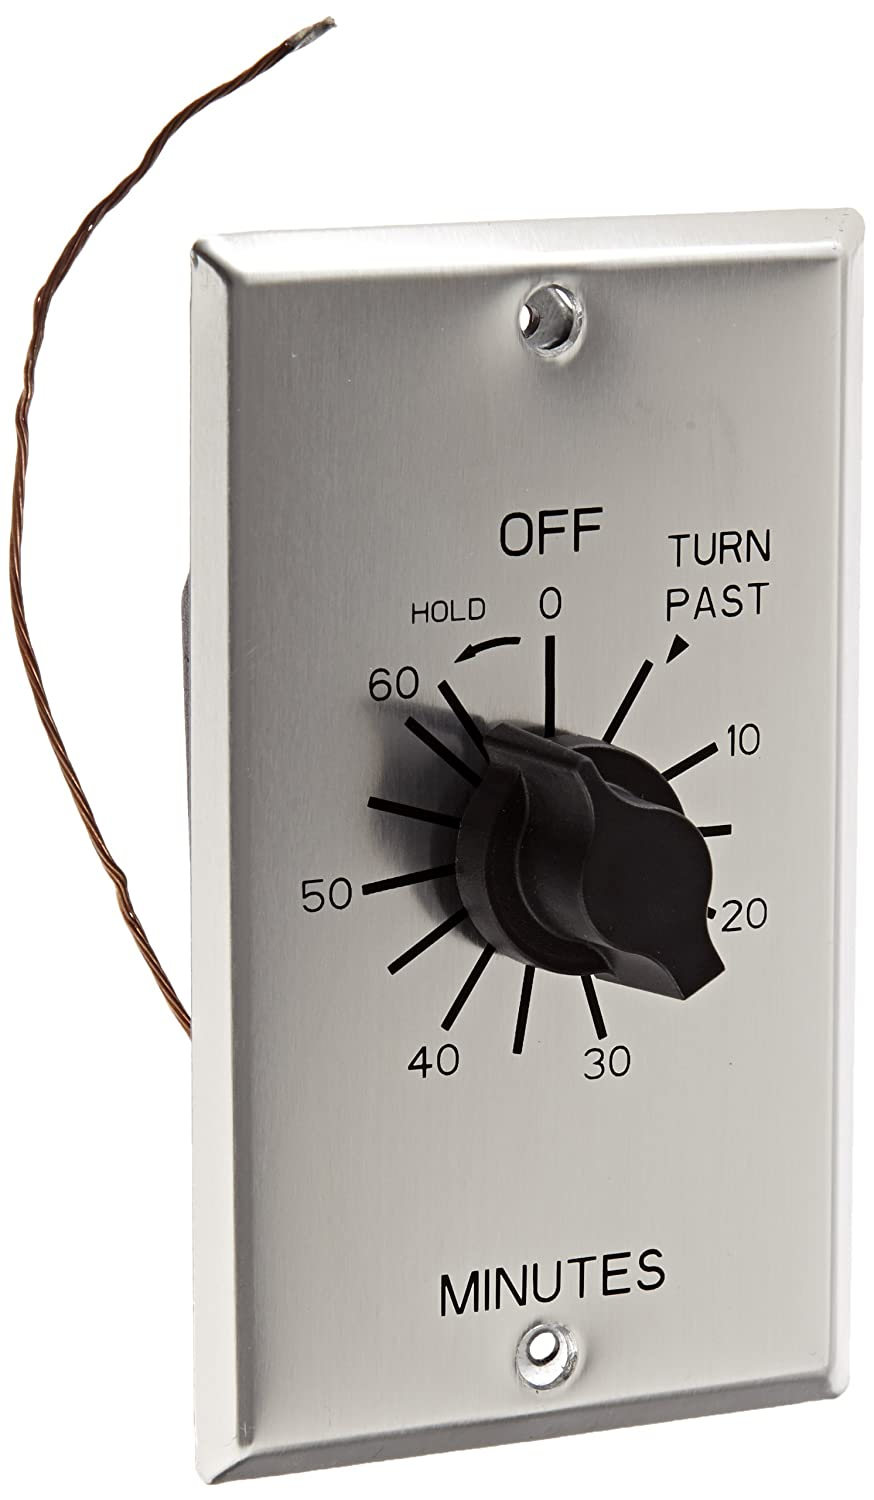 C Series Commercial Style Sringwound Auto Off in-Wall Time Switch with Hold, 60 Minute Timer Length, SPST Switch Type